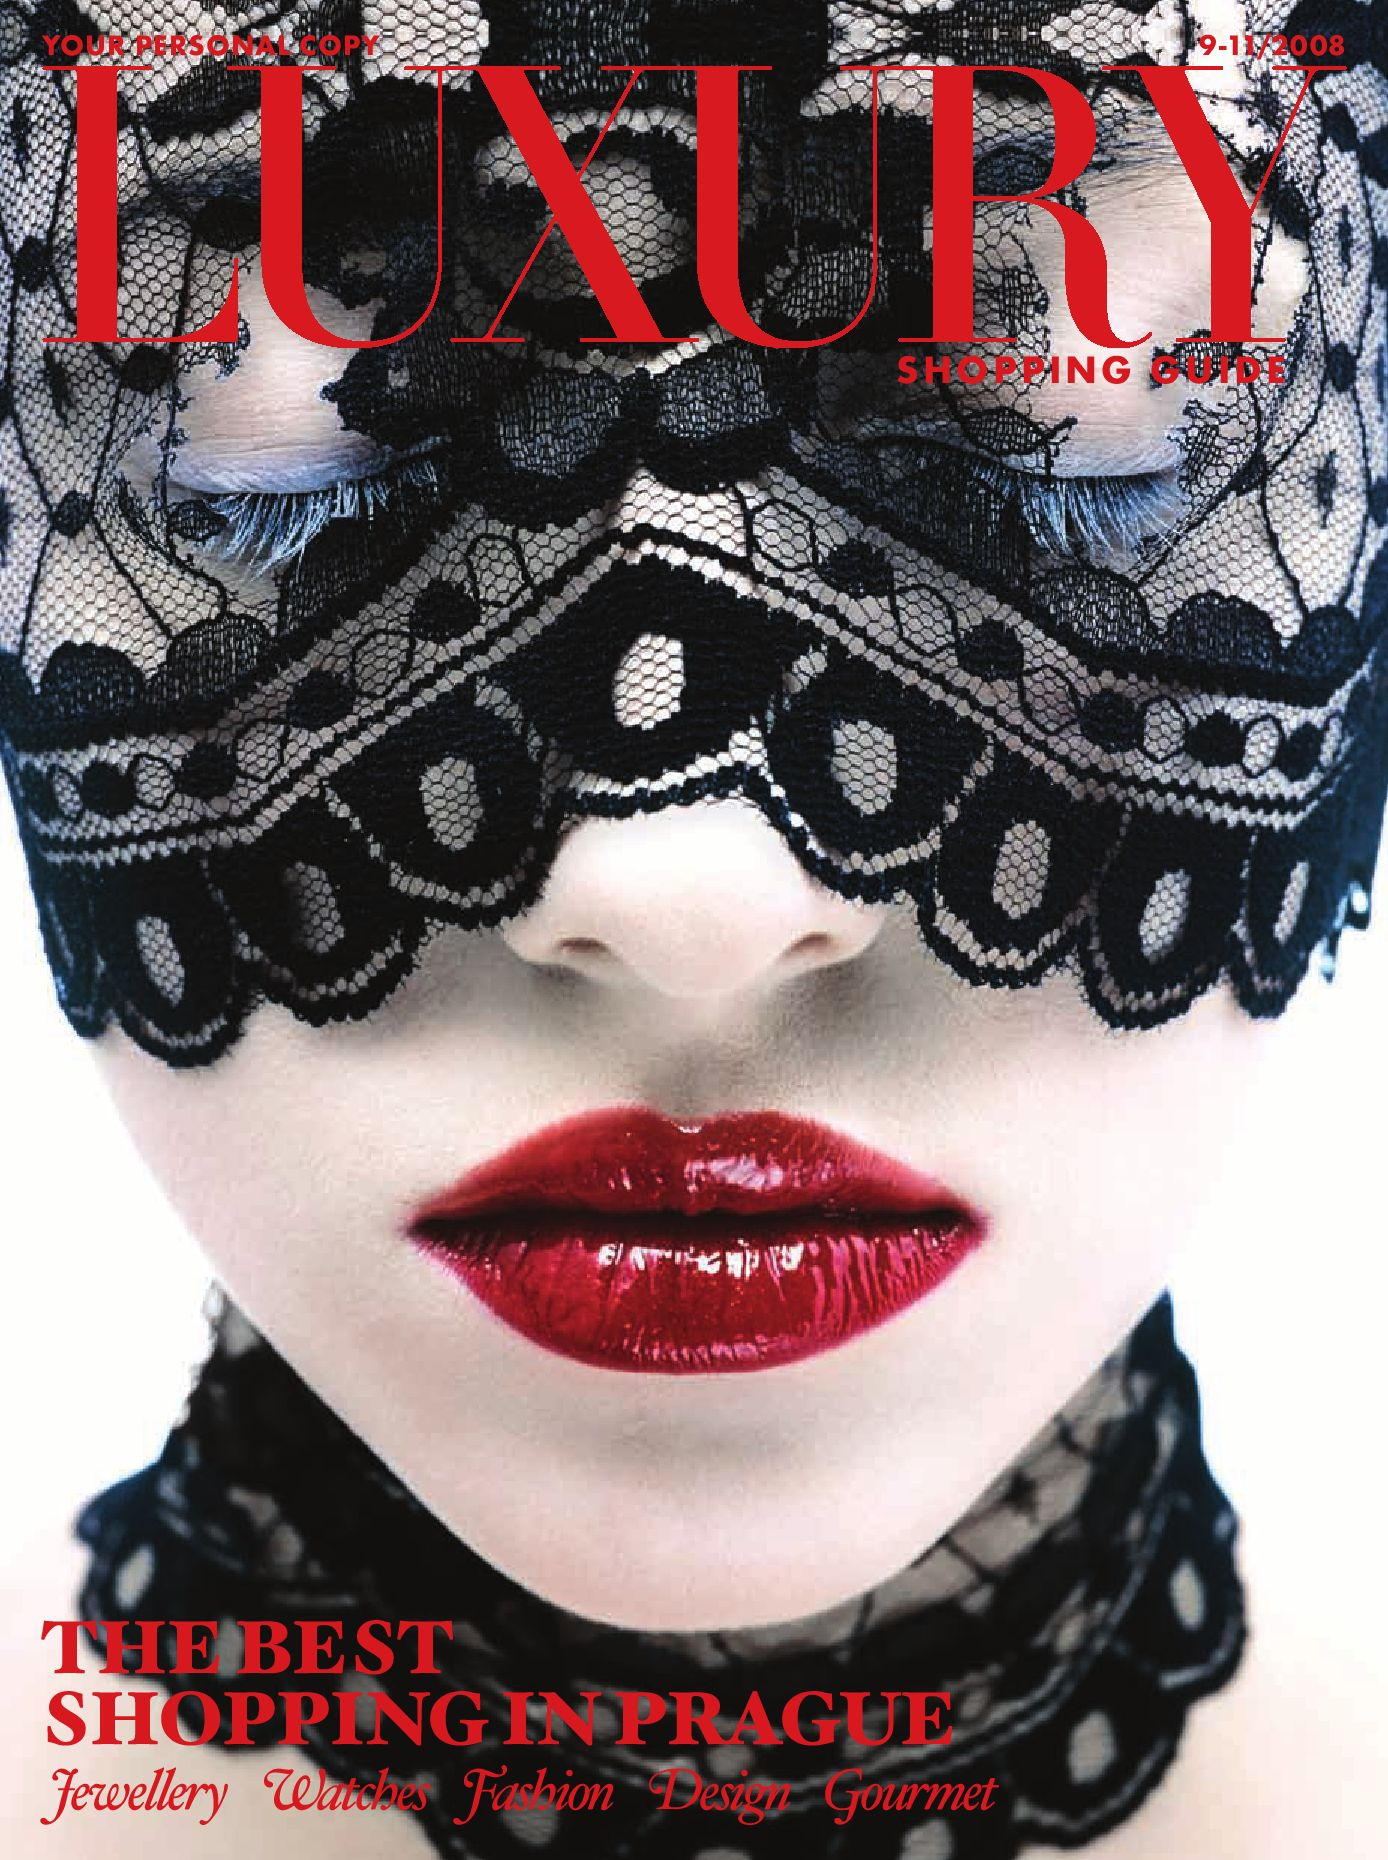 LSG 09 2008 komplet by Luxury Shopping Guide - issuu 9e5c886b39